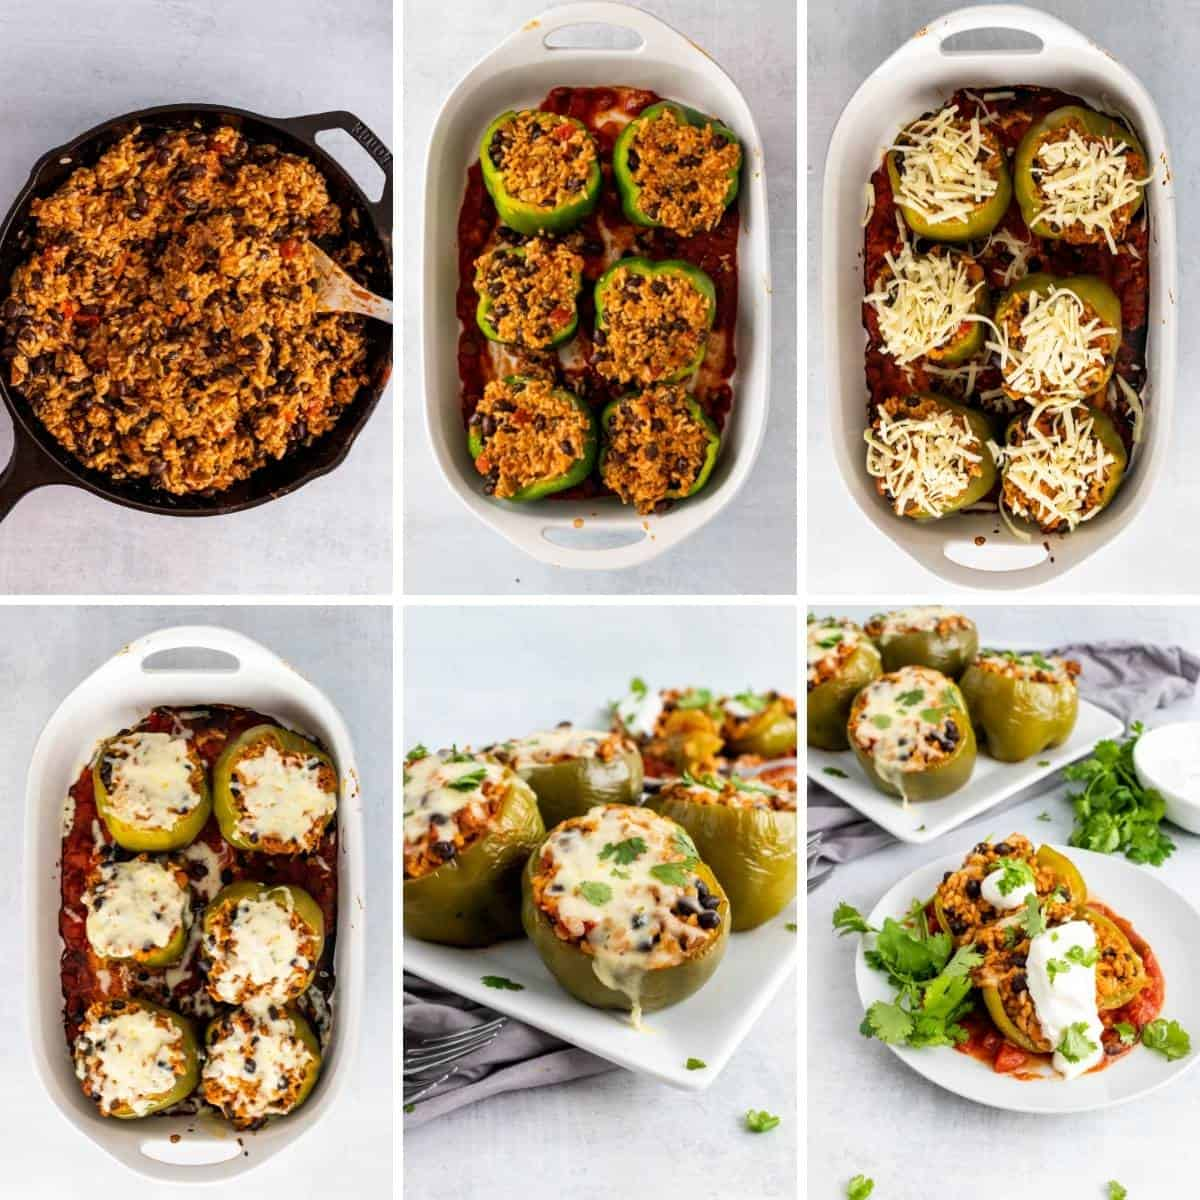 Another collage showing the last steps to making taco stuffed peppers